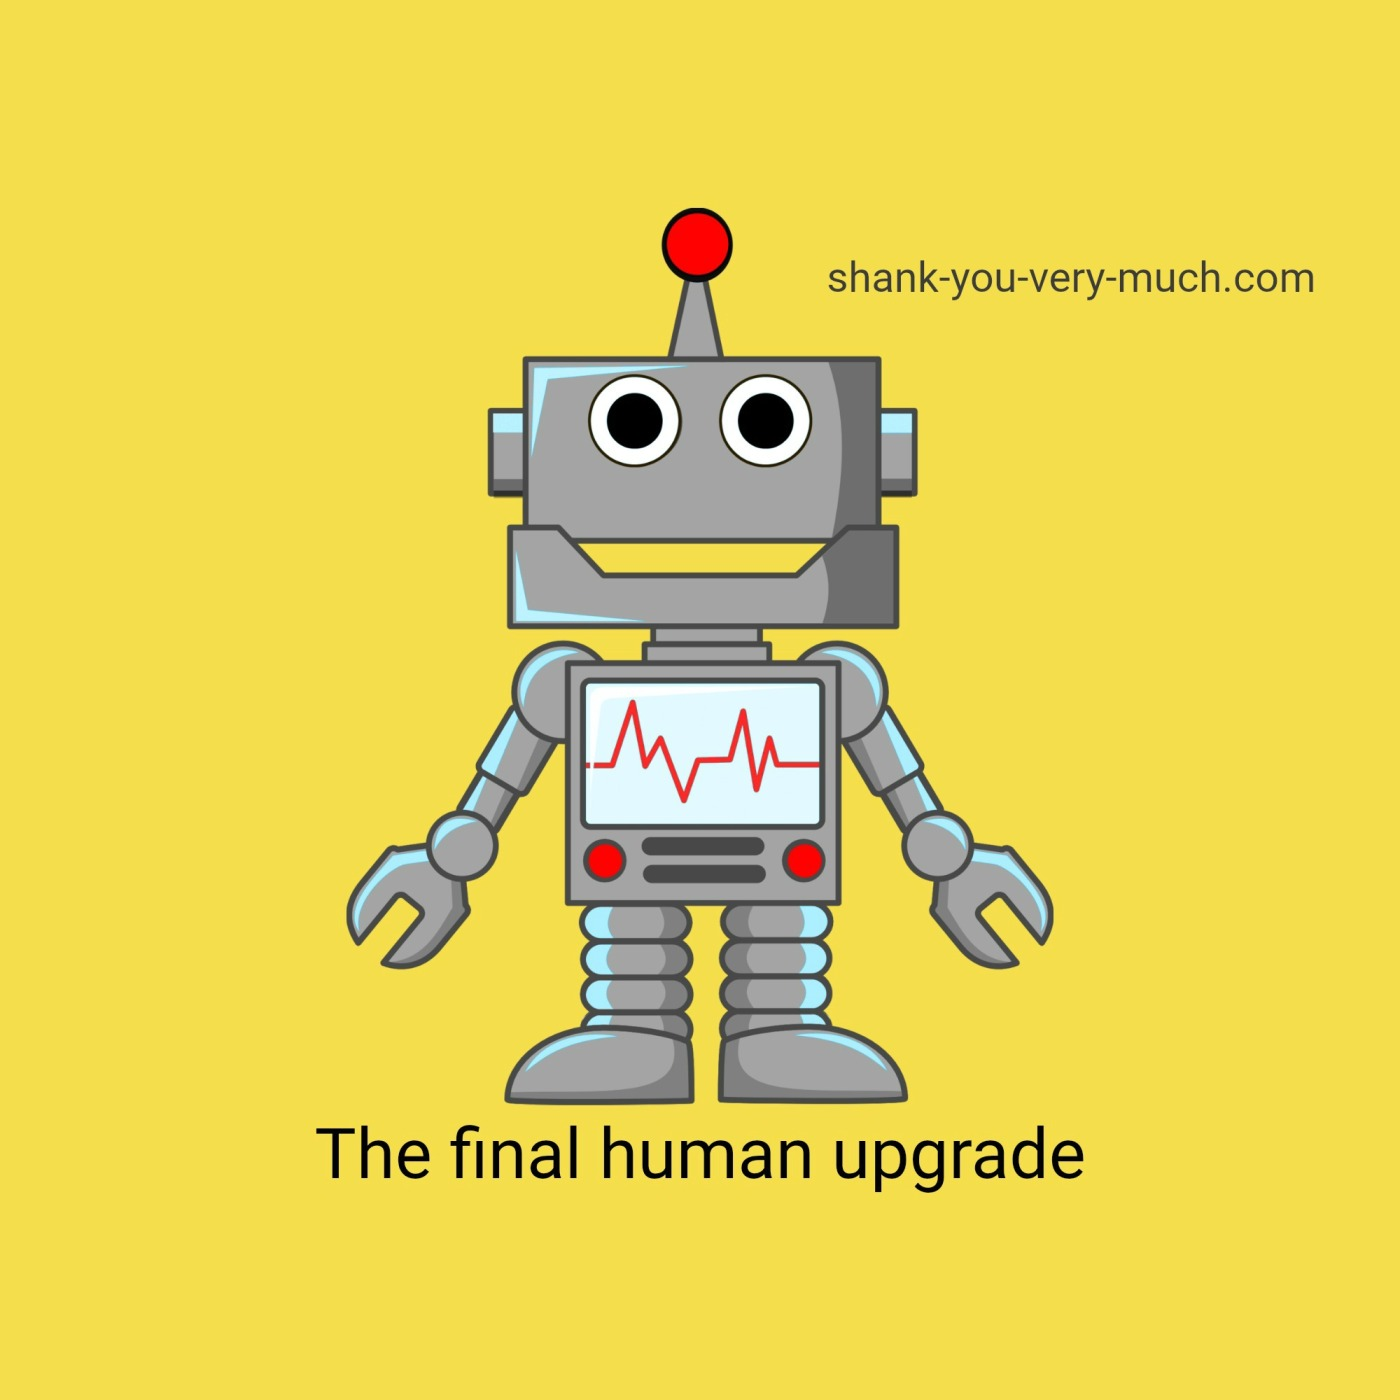 A cartoon graphic showing a smiling robot